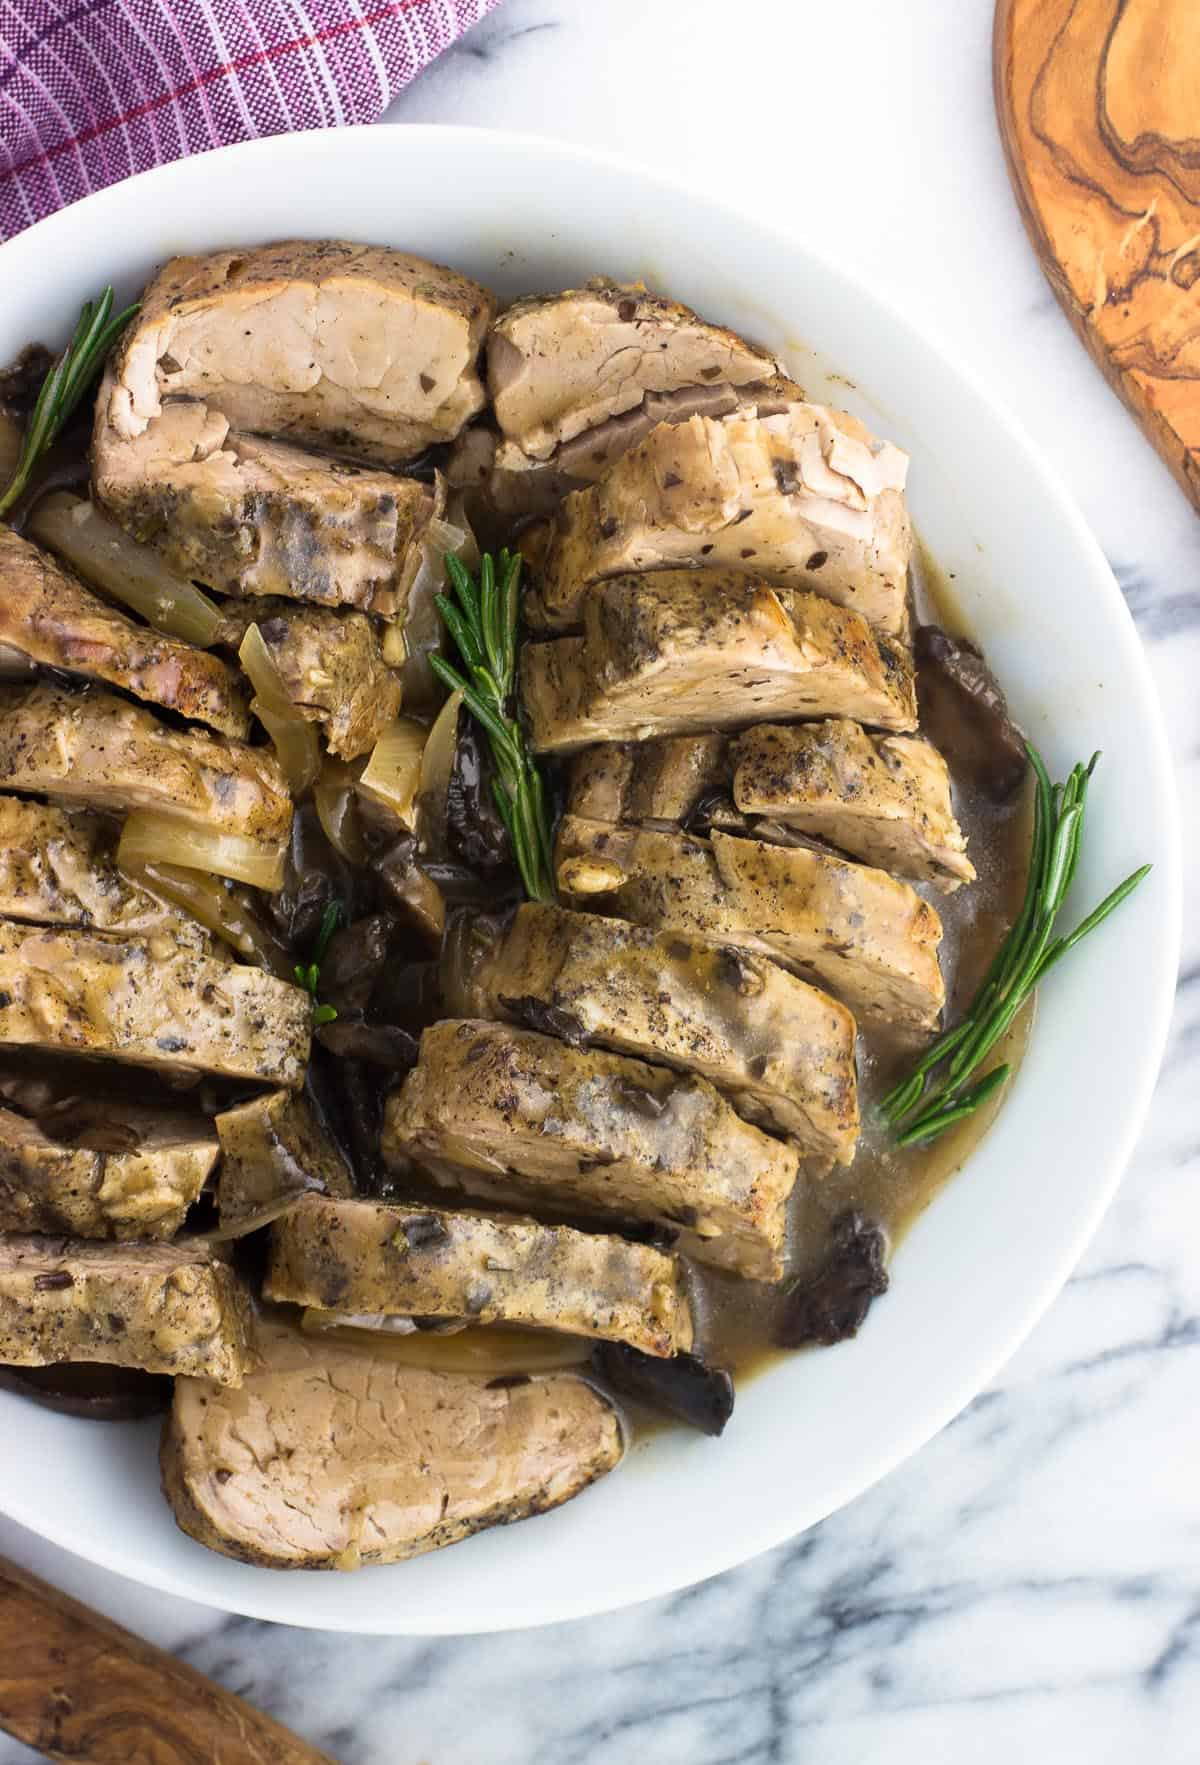 Sliced pork tenderloin in a serving dish with sauce and rosemary sprigs